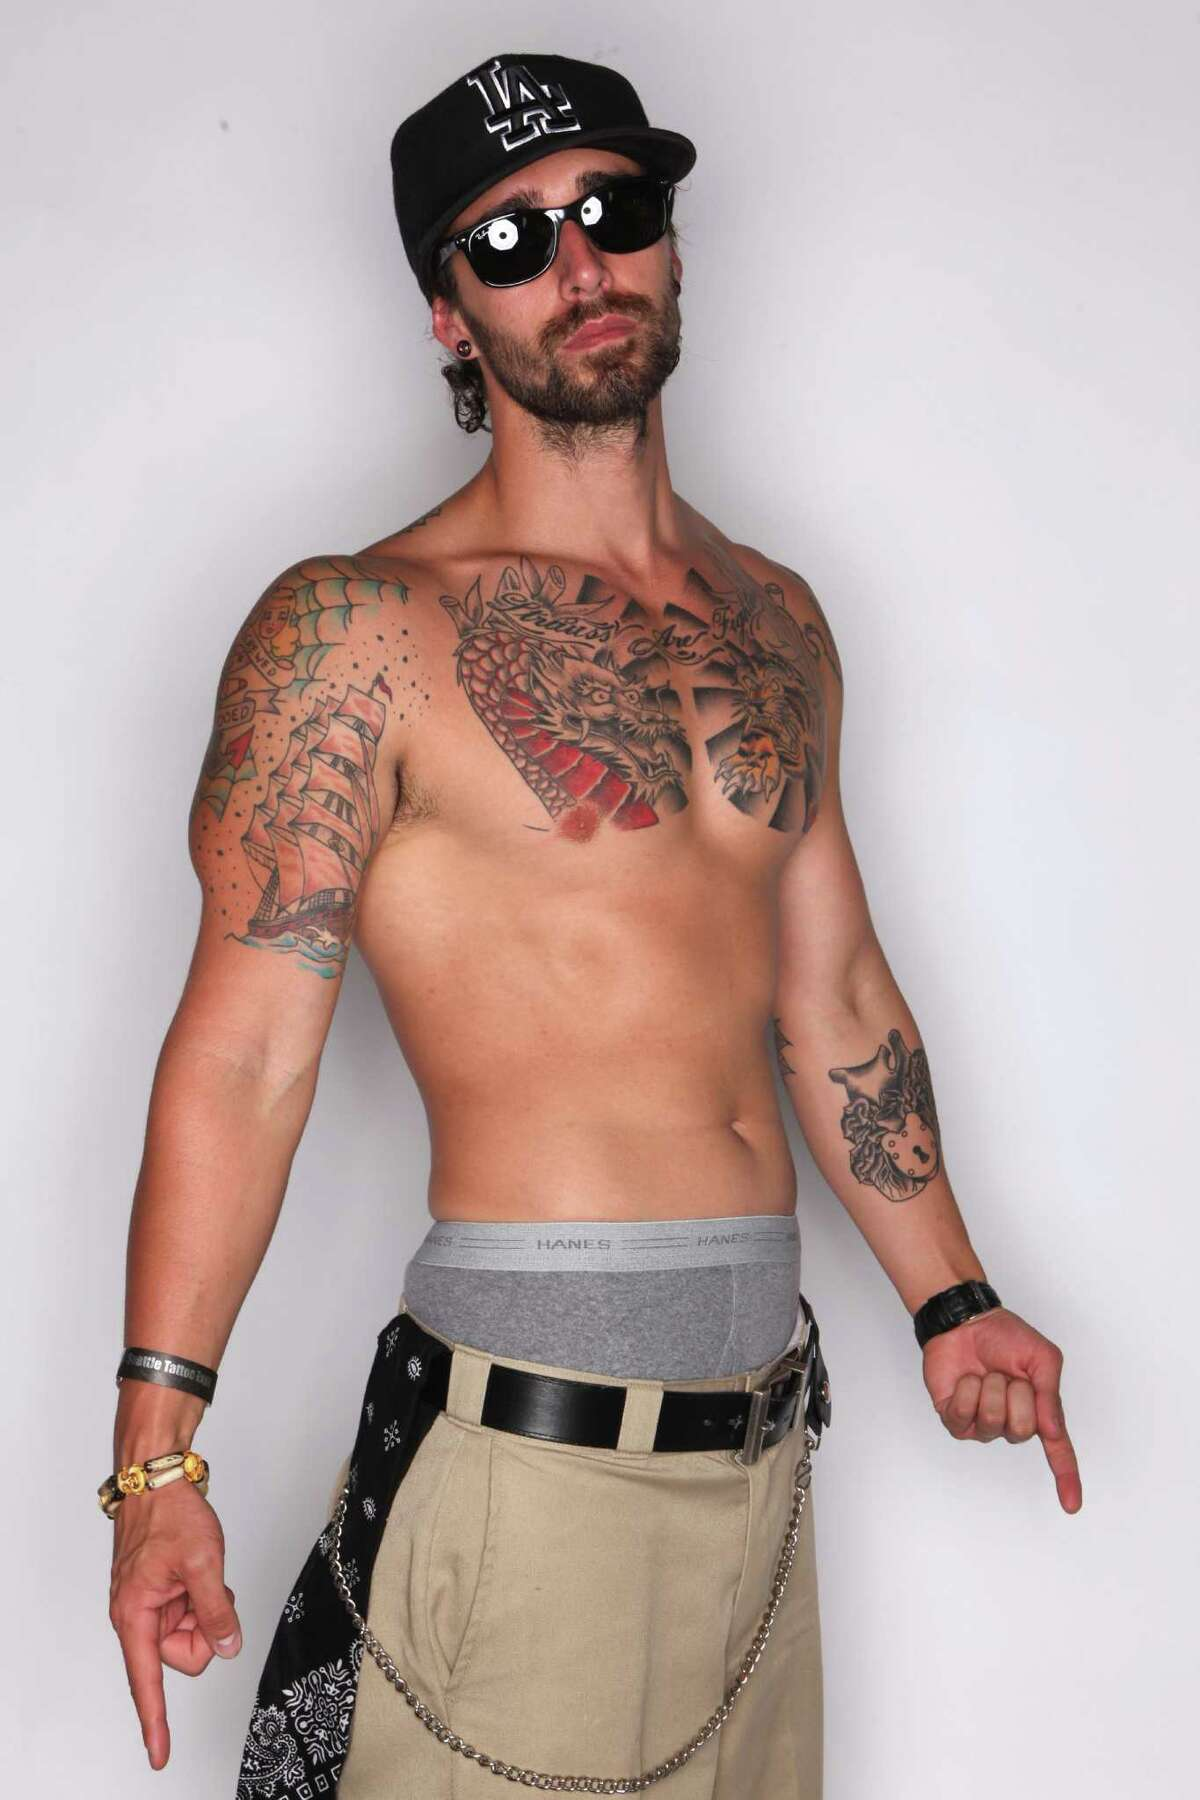 J. Strauss shows some of his tattoos at the Seattle Tattoo Expo.